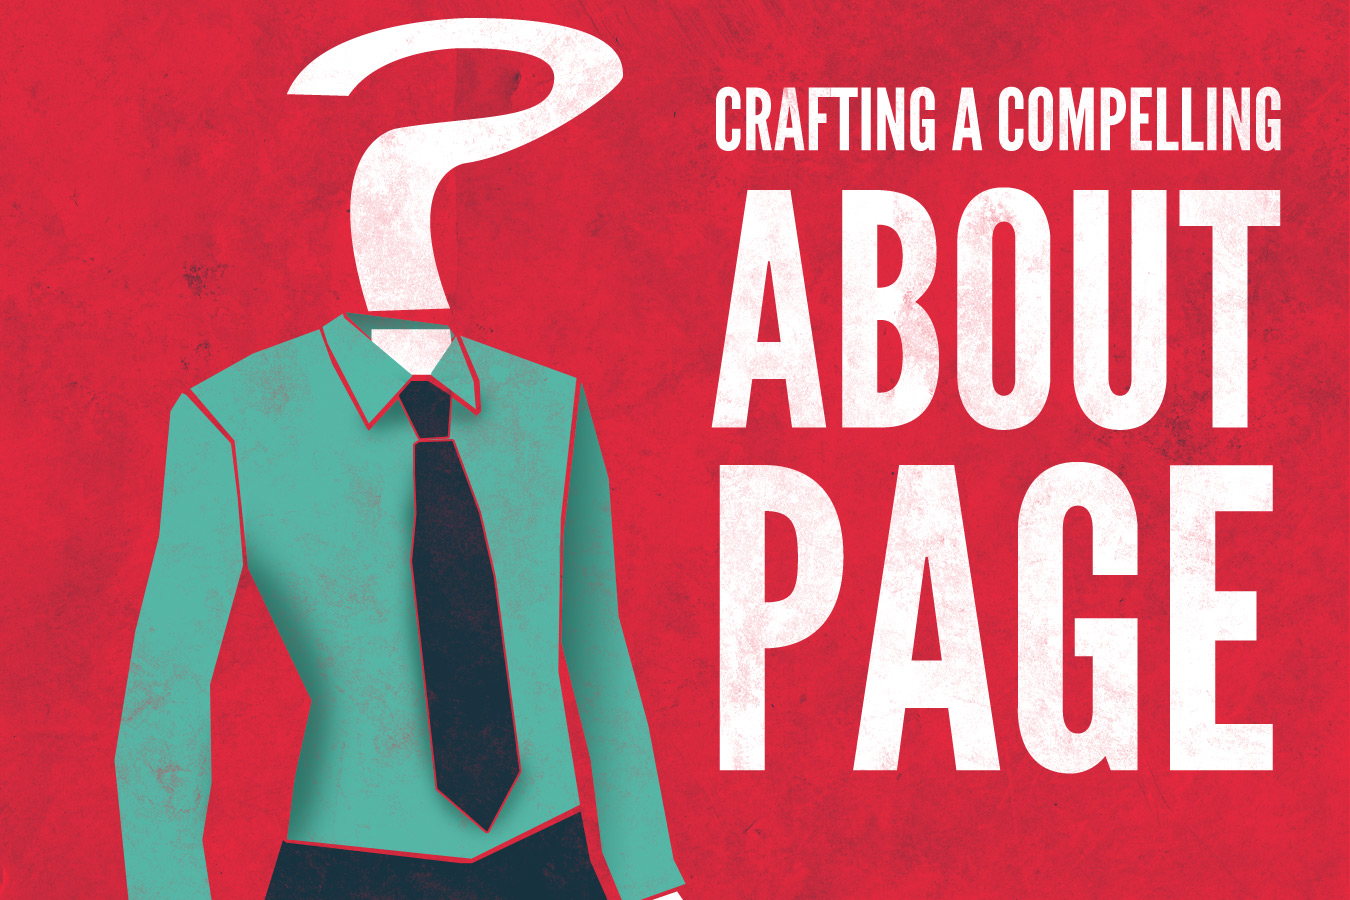 How to craft a compelling about us page